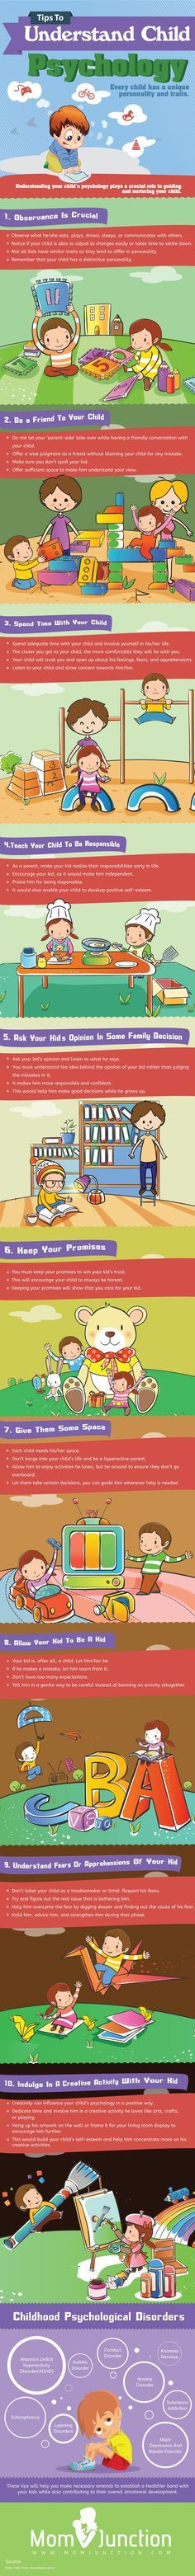 Do you have trouble understanding your children? Keep reading for tips on how to understand your child psychology. Read on!